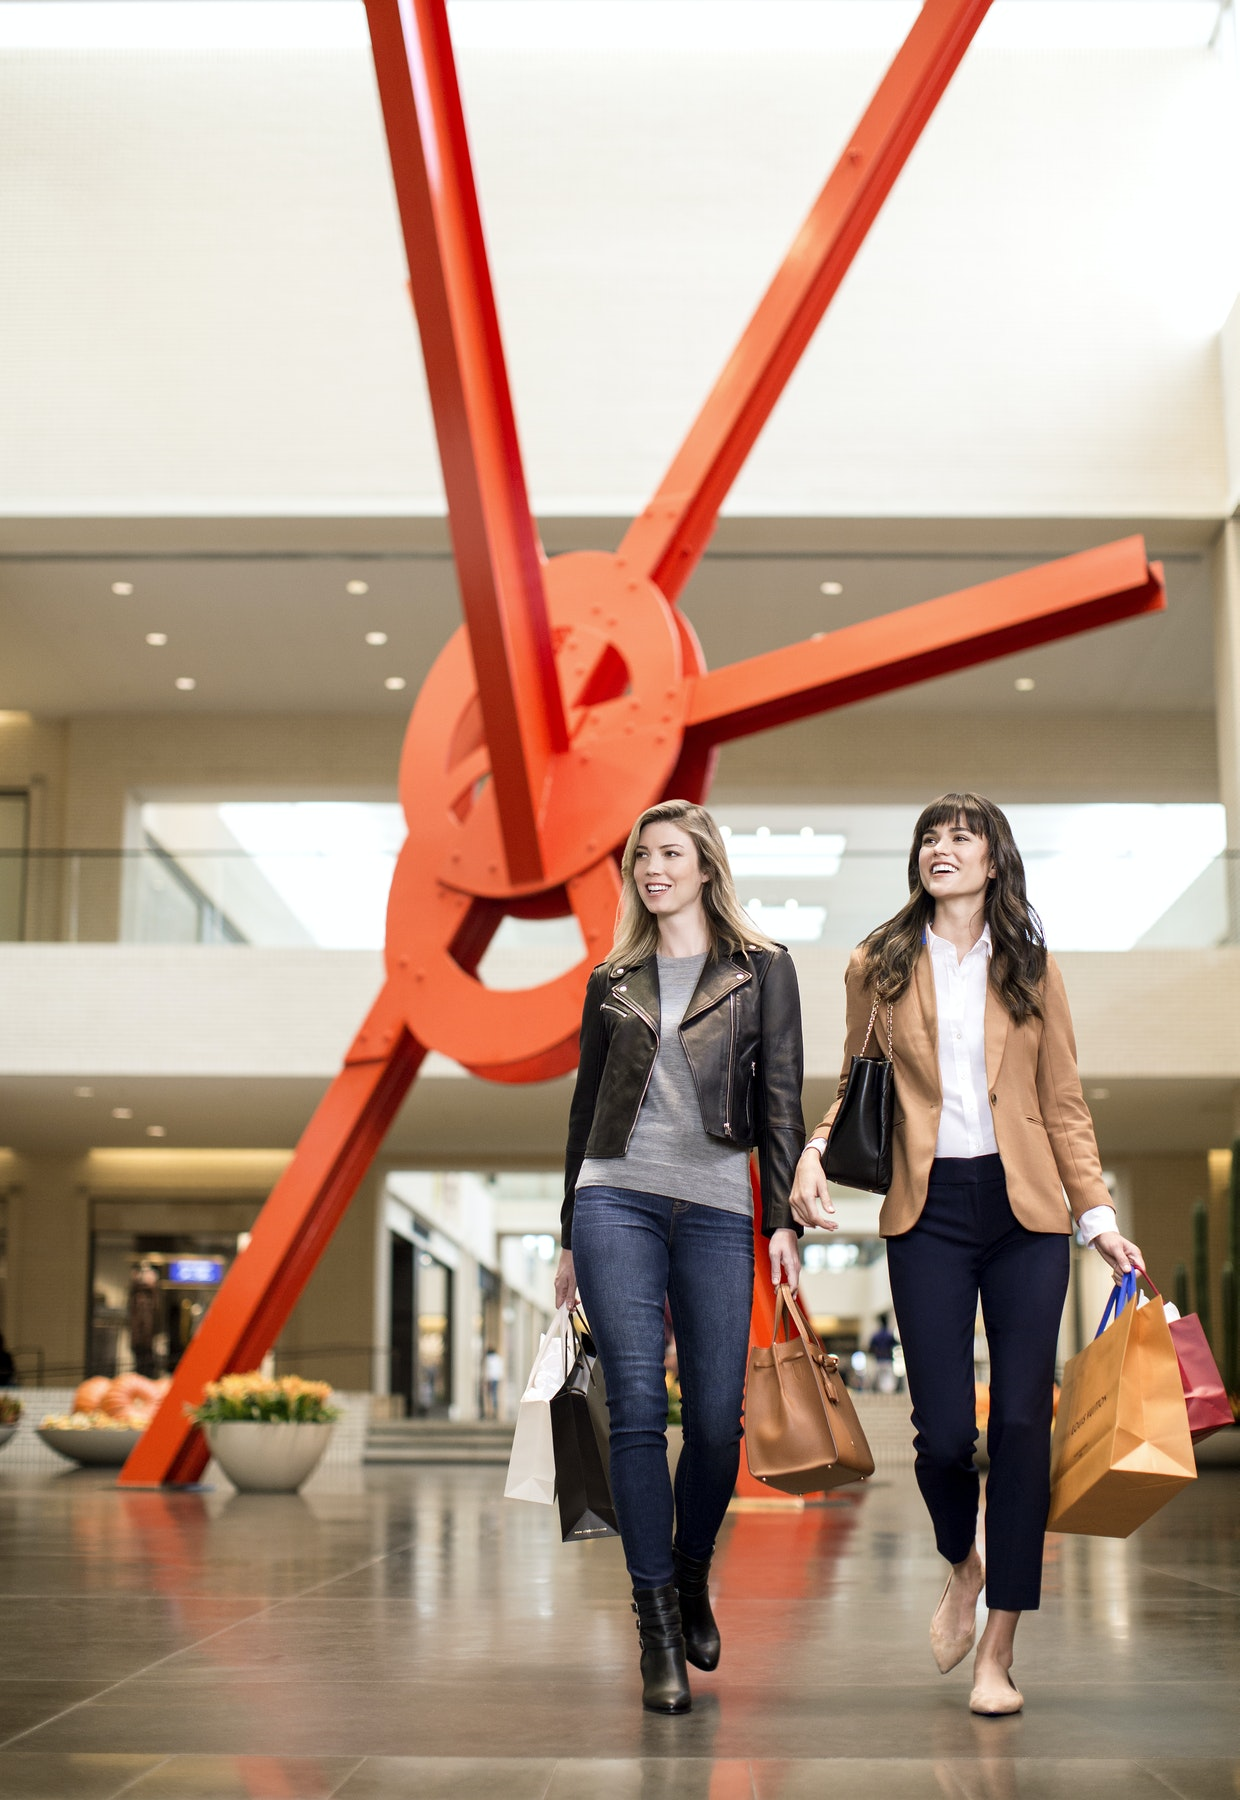 NorthPark Center in Beyond Dallas